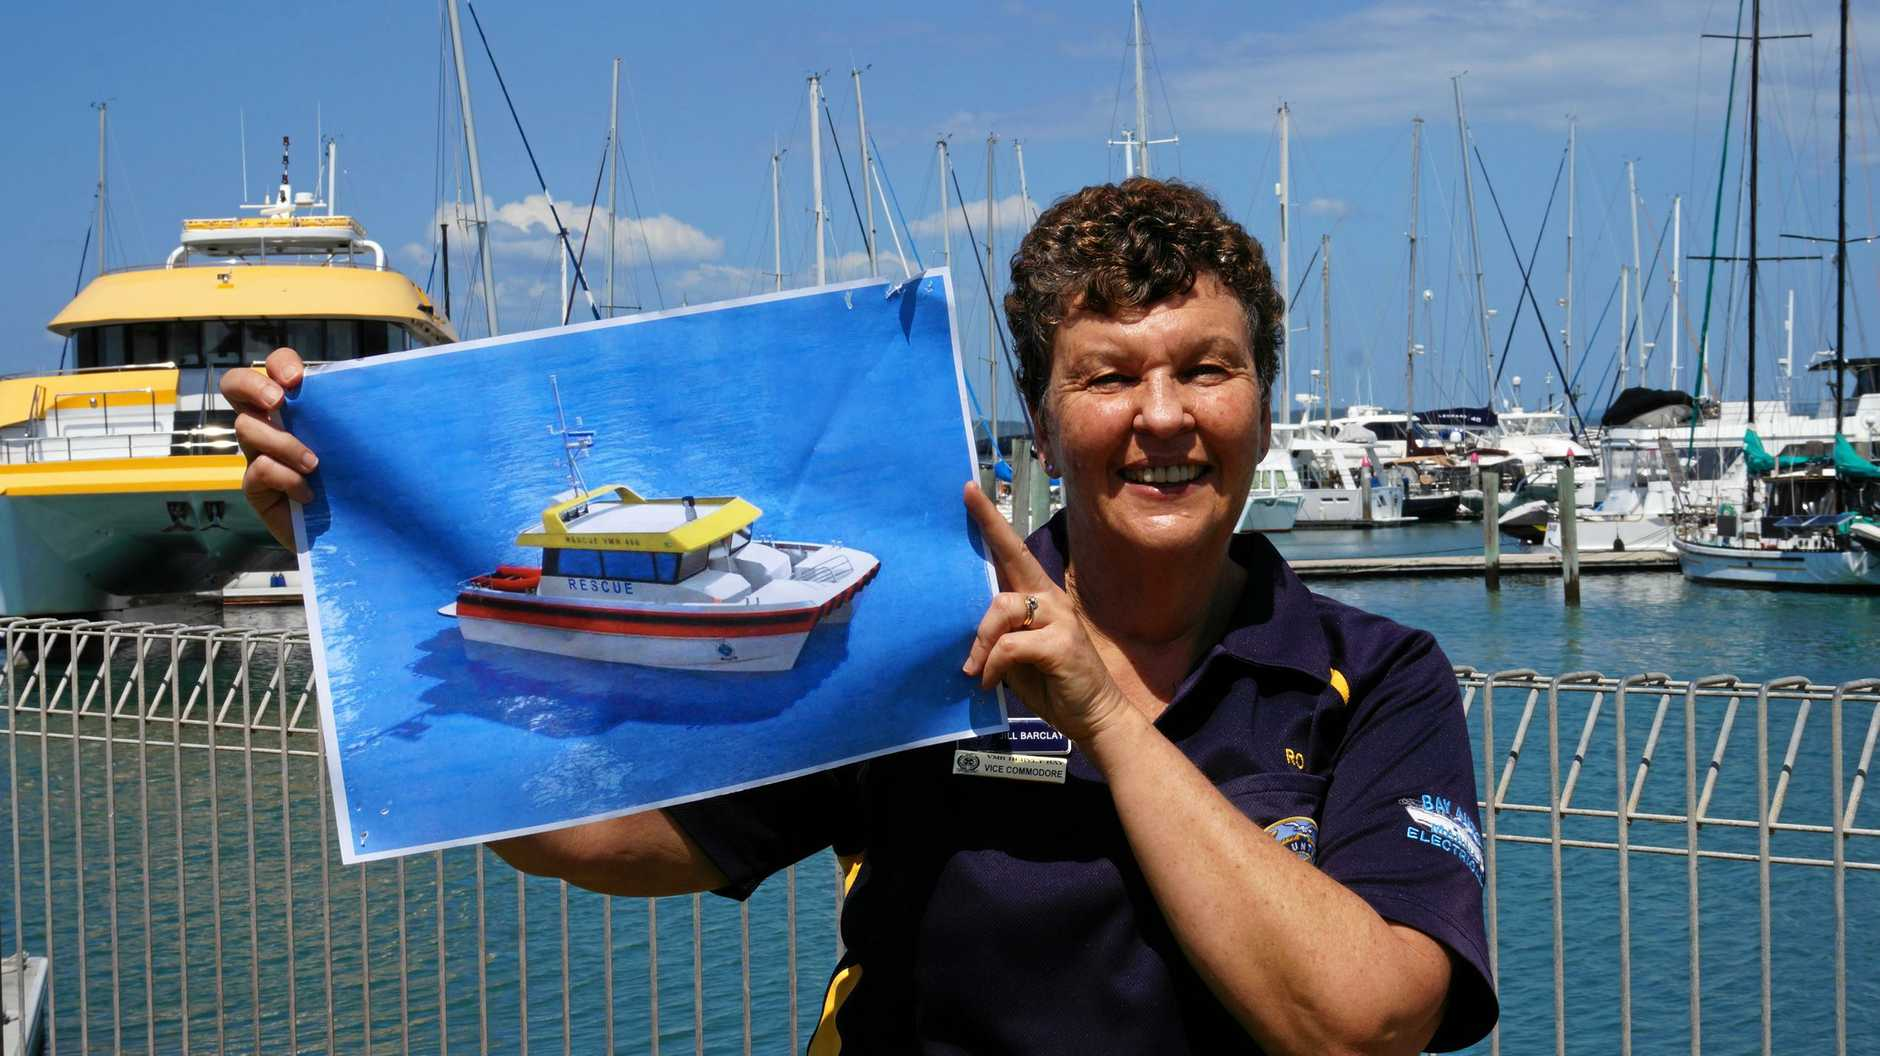 PROMISES AFLOAT: Vice commodore of Hervey Bay VMR Jill Barclay with draft designs for a new rescue vessel. The LNP has pledged $1 million for the boat.